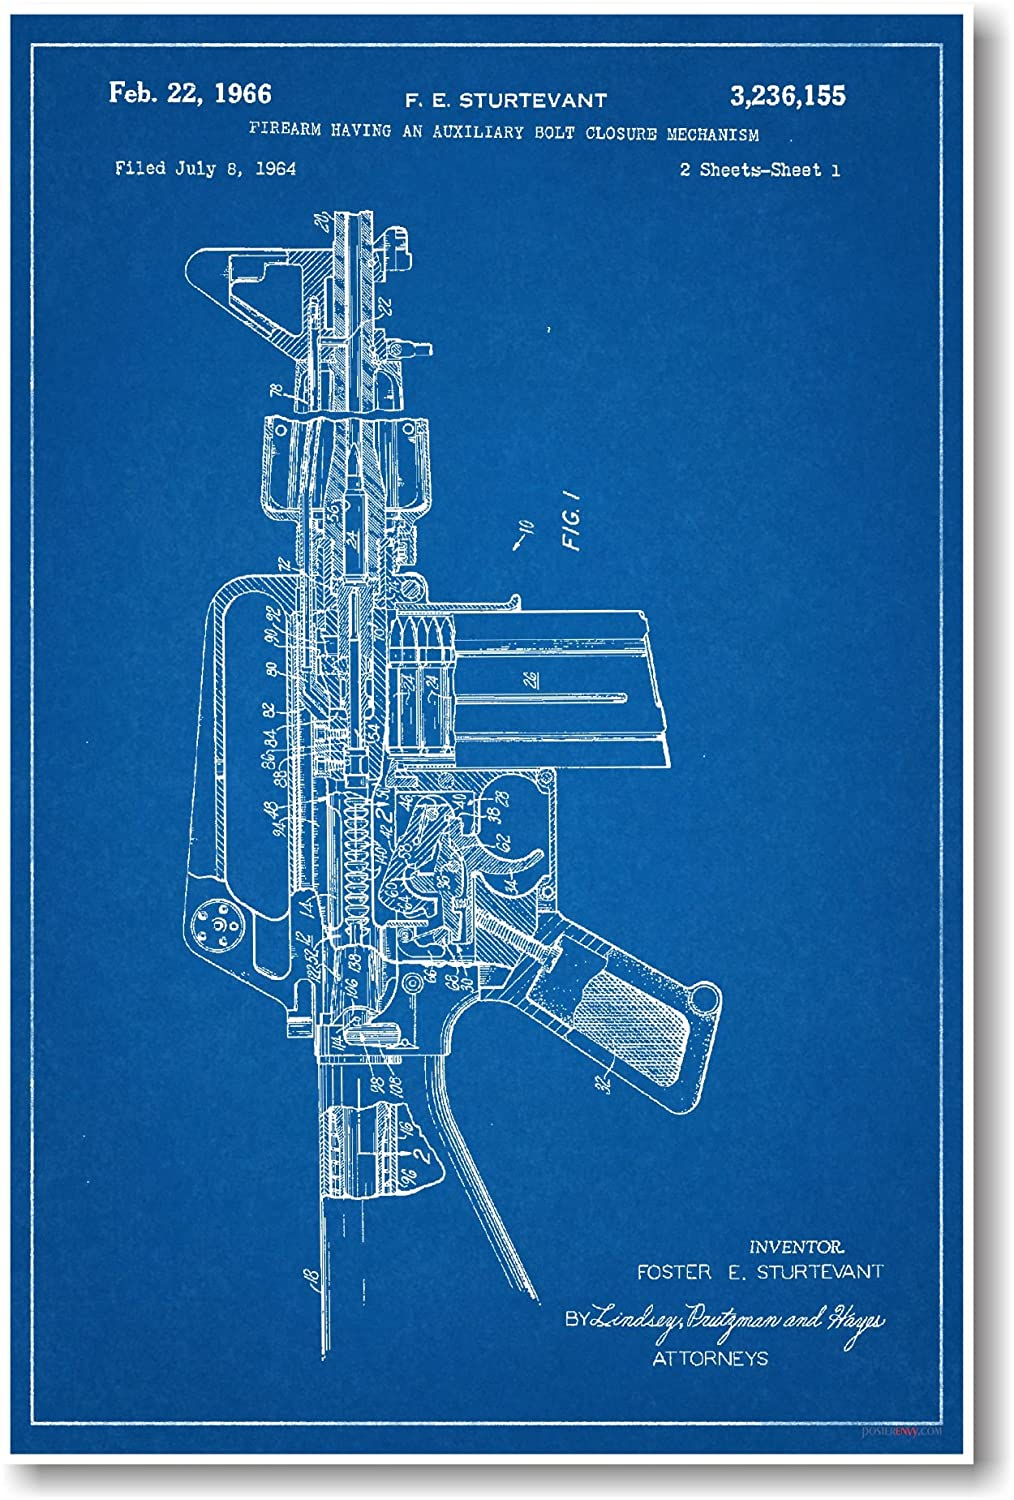 Amazon ar 15 assault rifle patent new famous invention amazon ar 15 assault rifle patent new famous invention blueprint poster office products malvernweather Gallery